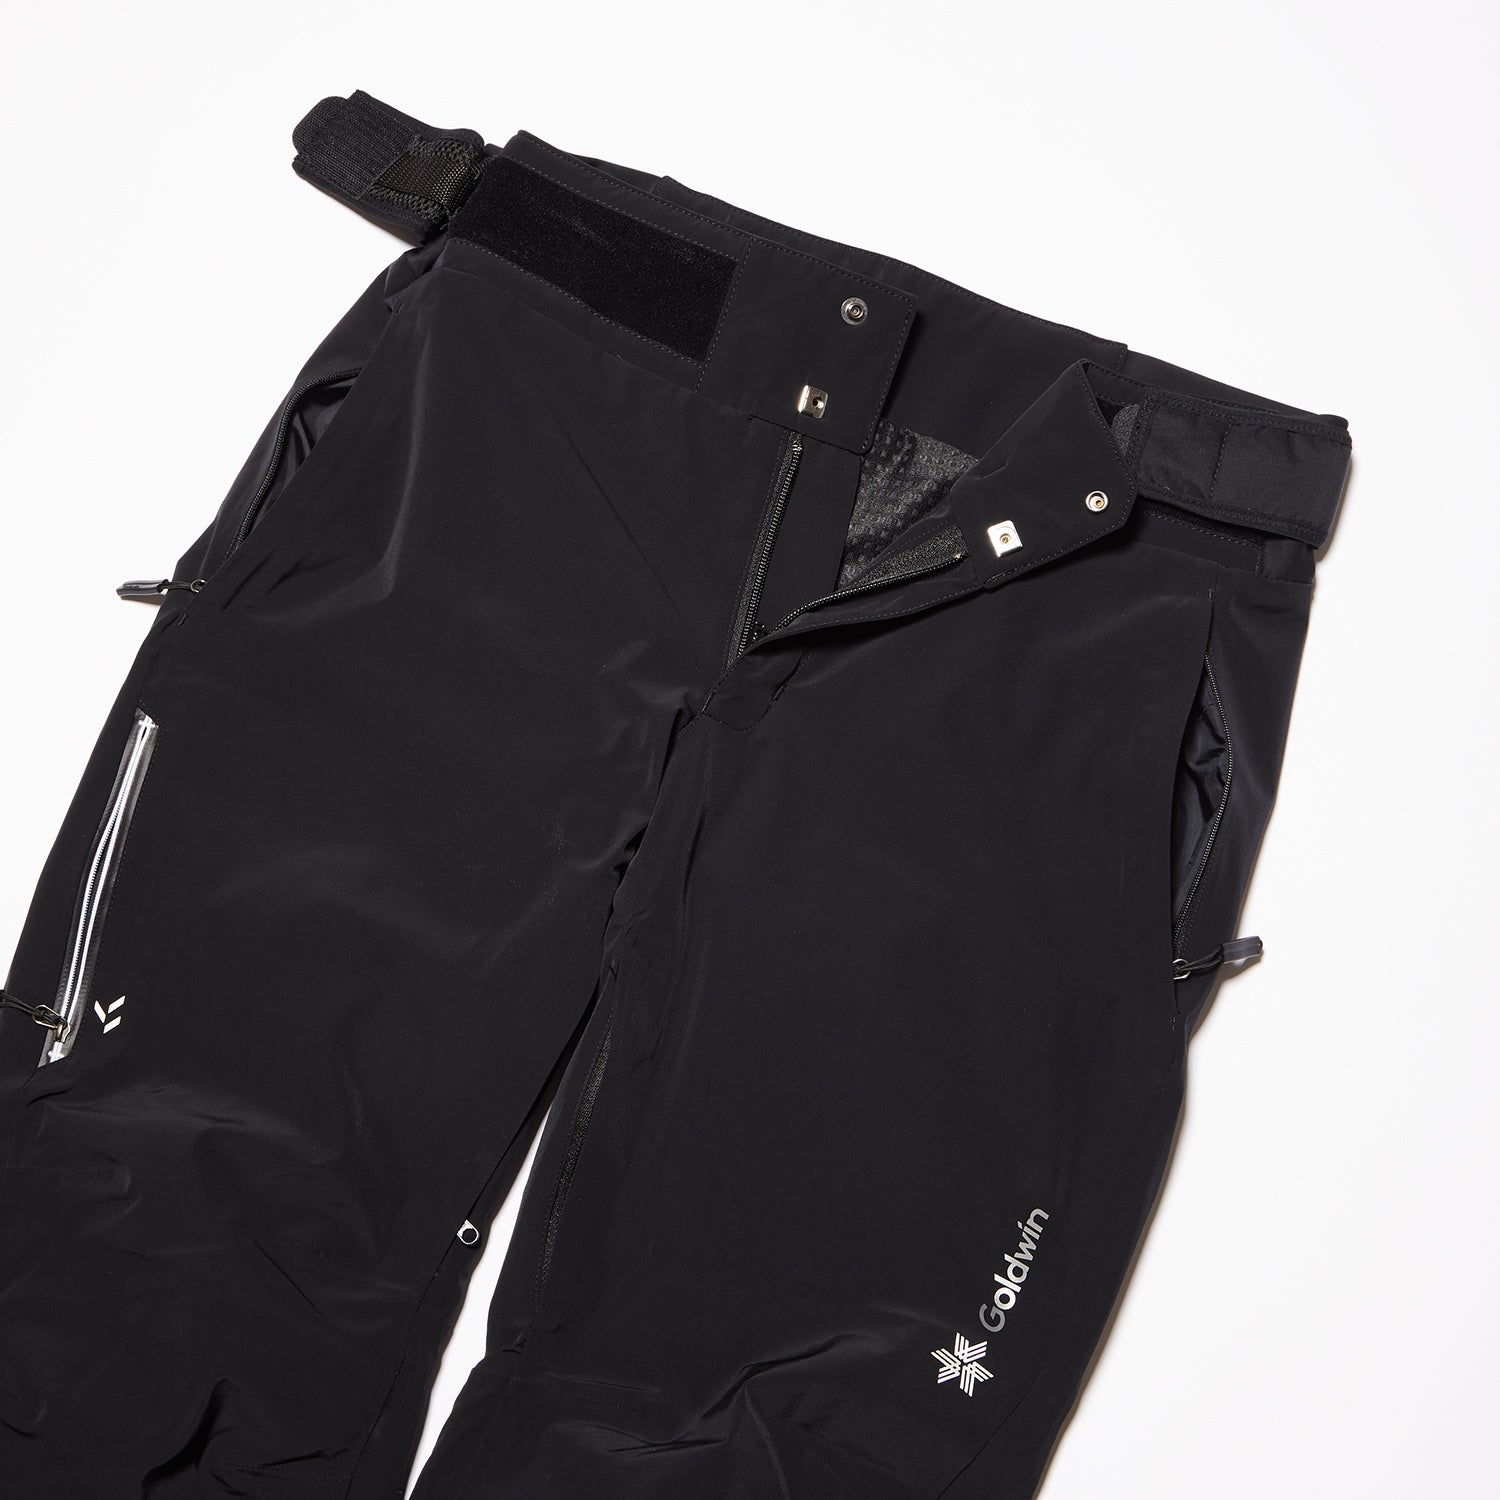 G-BLISS PANTS